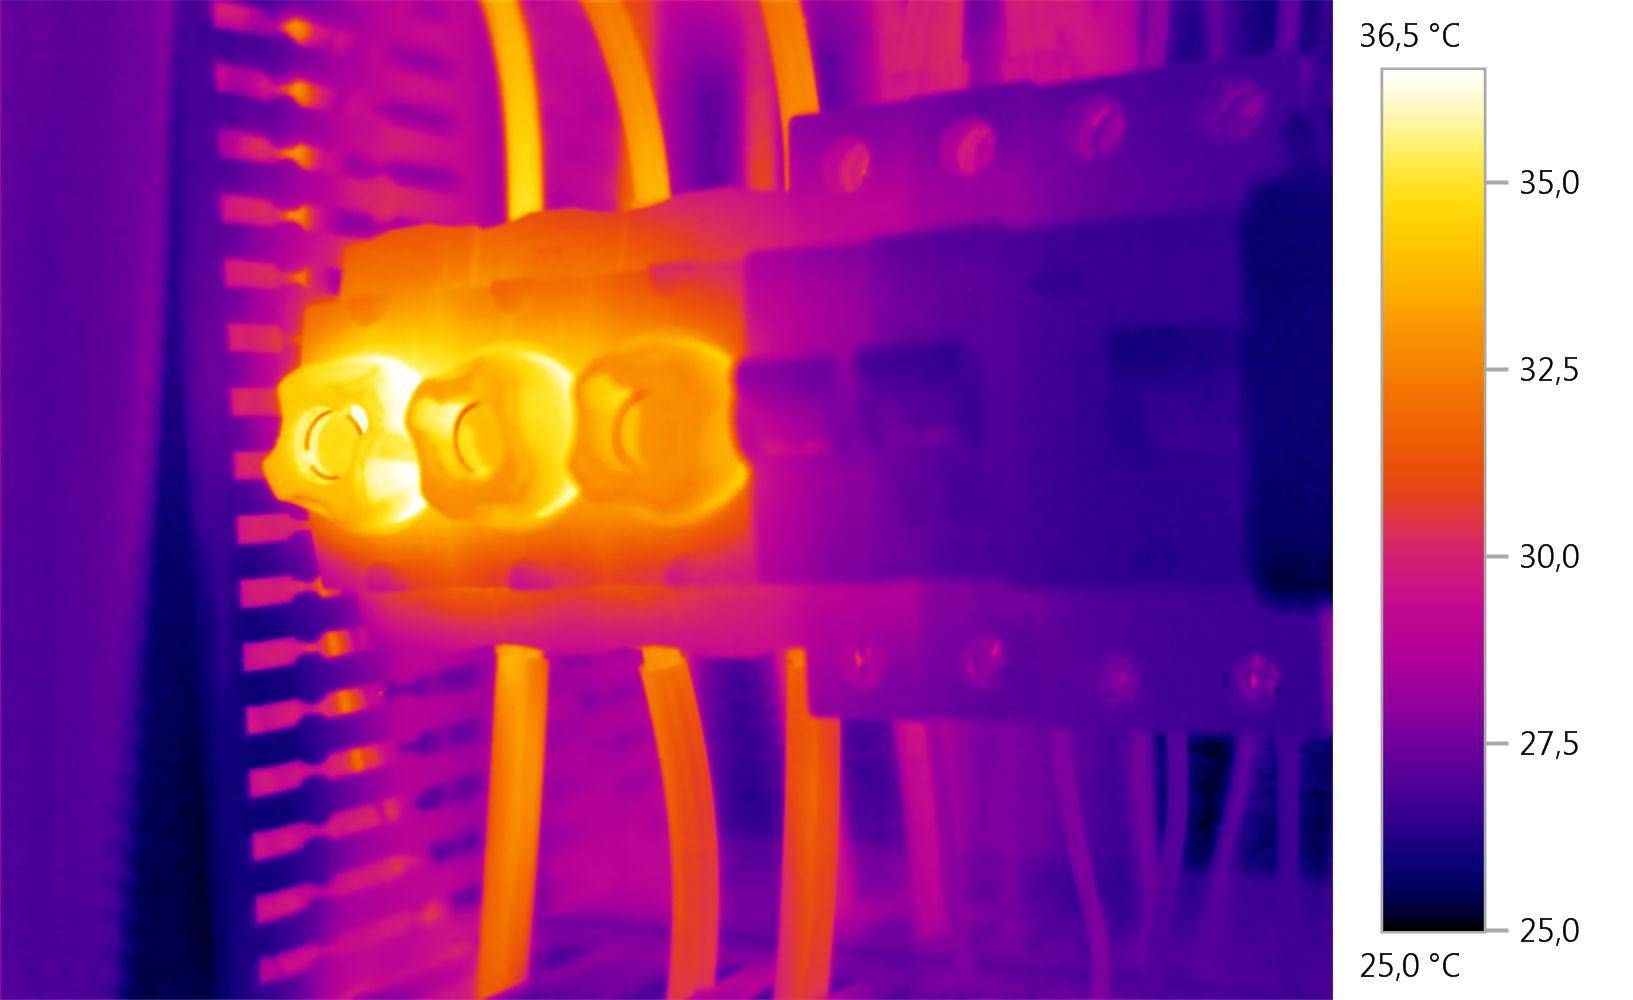 Thermal image for thermography in a control cabinet